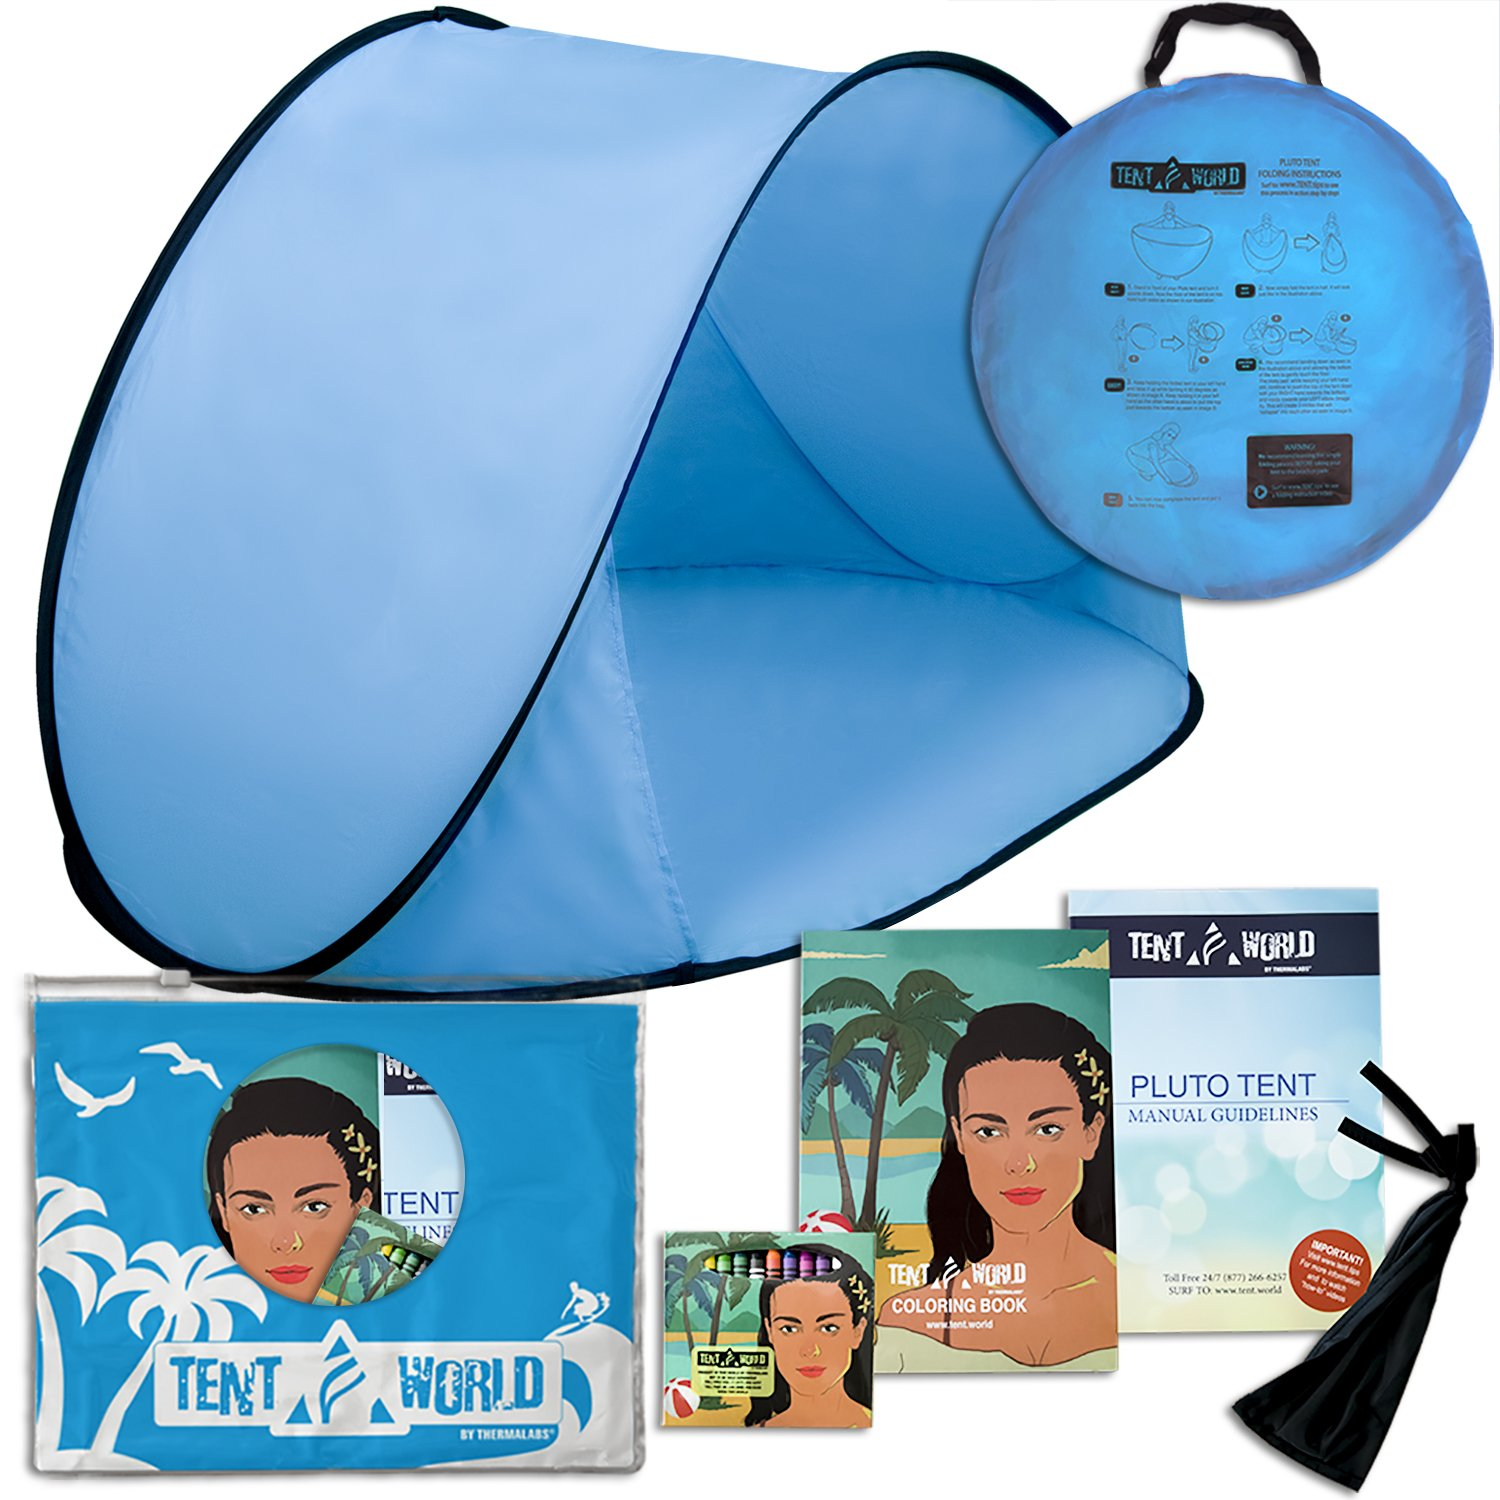 Baby Blue Pluto Sky Tent. Amazon's easy instant one step wind & sunshelter designed for your family to provide shade from the sun just like pacific umbrellas. Take our amazing tent cobana hut for your next sports park event! B01KHLO1IS